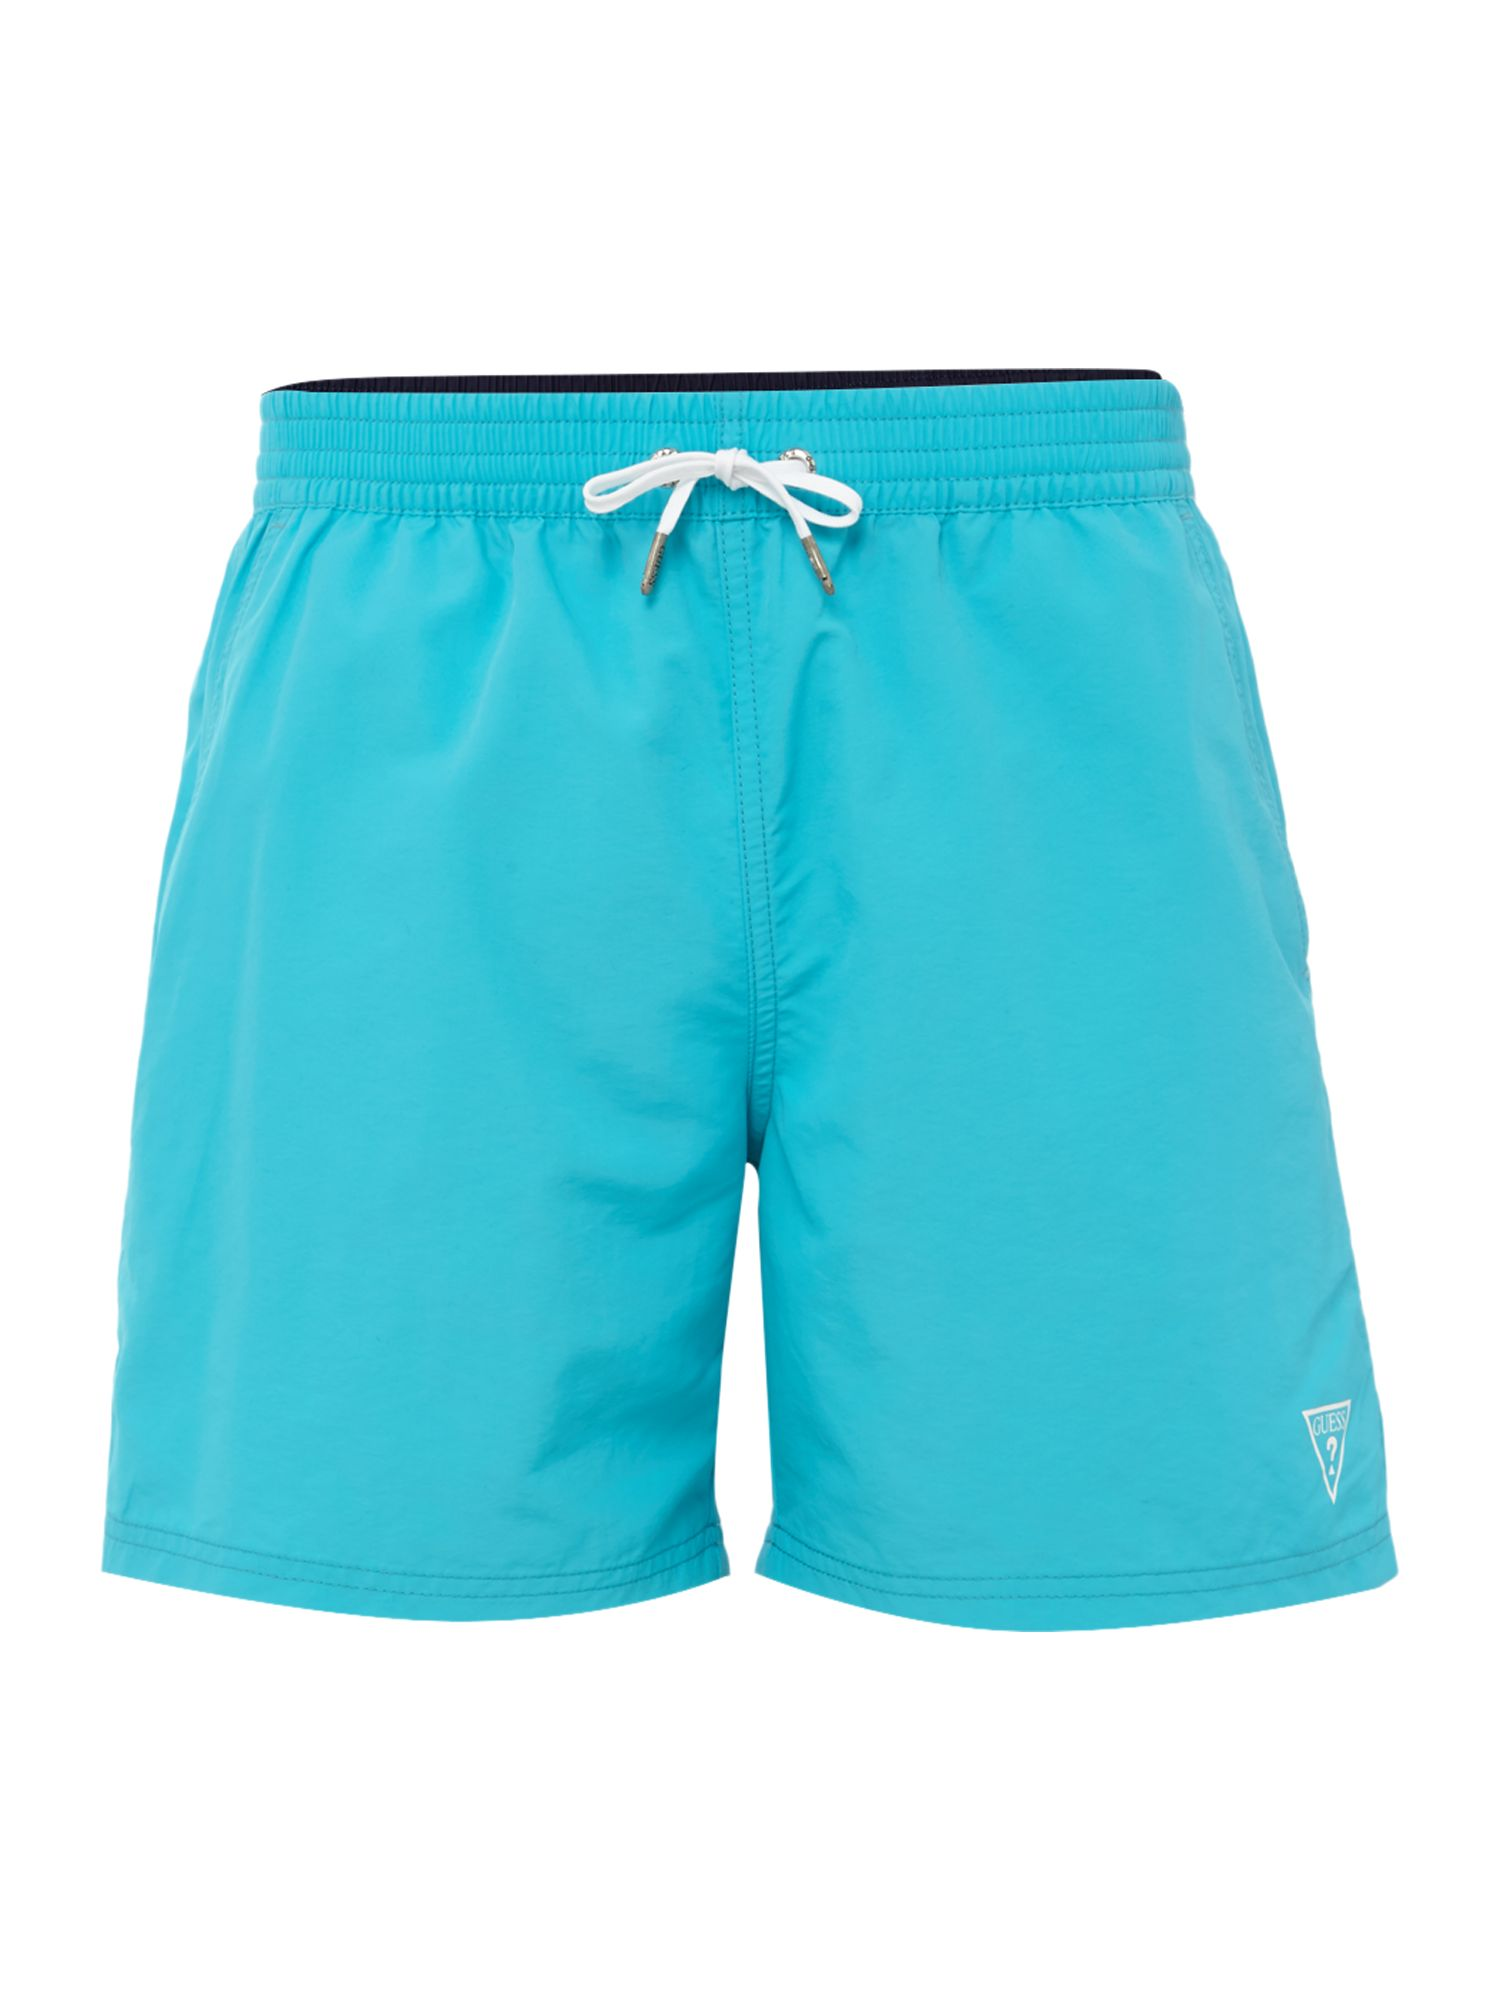 Men's Guess Mid Length Logo Swim Shorts, Turquoise